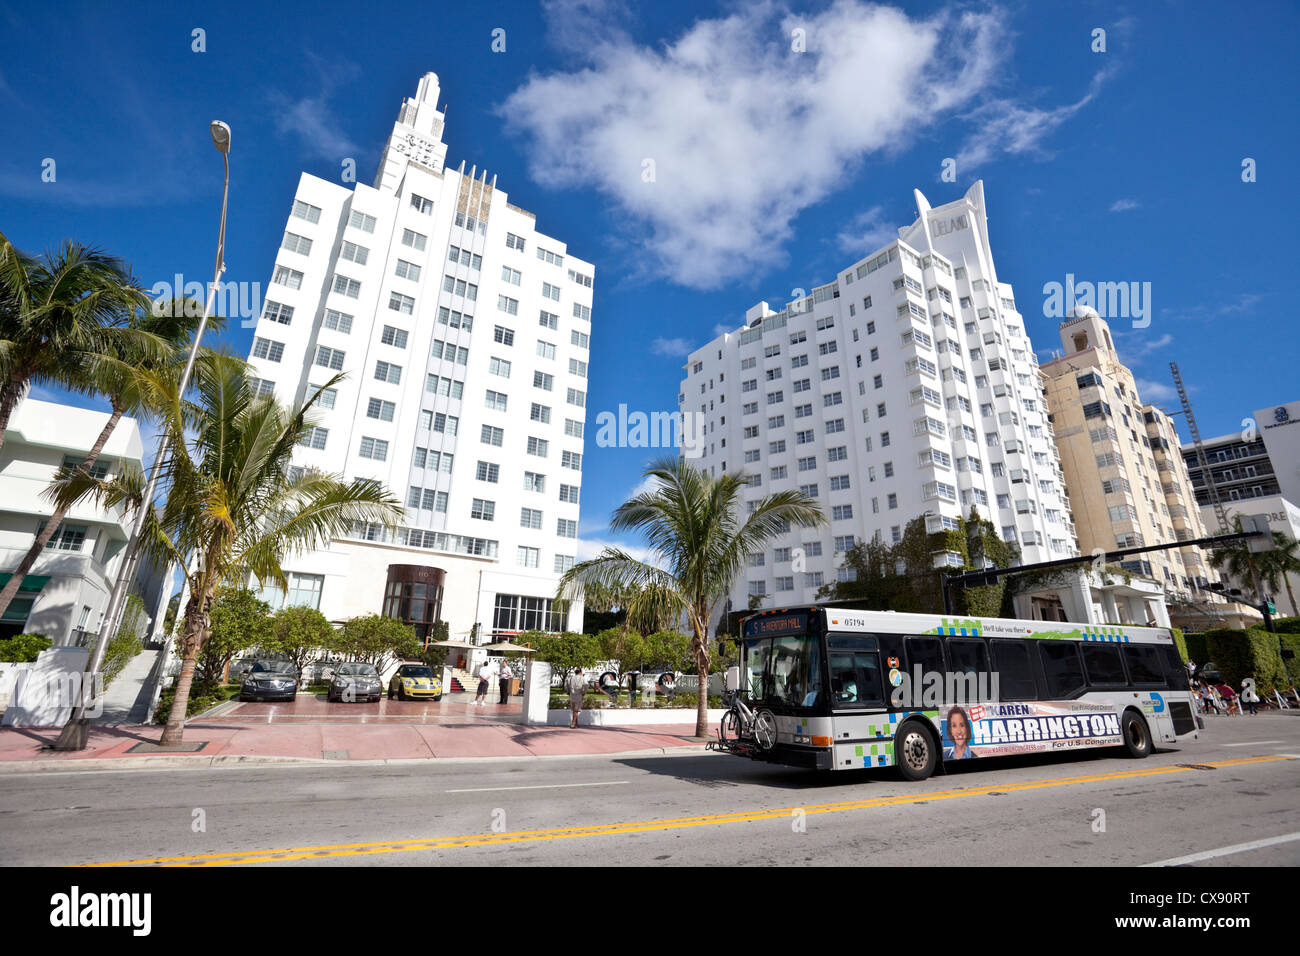 Hotel buildings in the Art Deco District, South Beach, Miami Beach, Florida, USA. - Stock Image